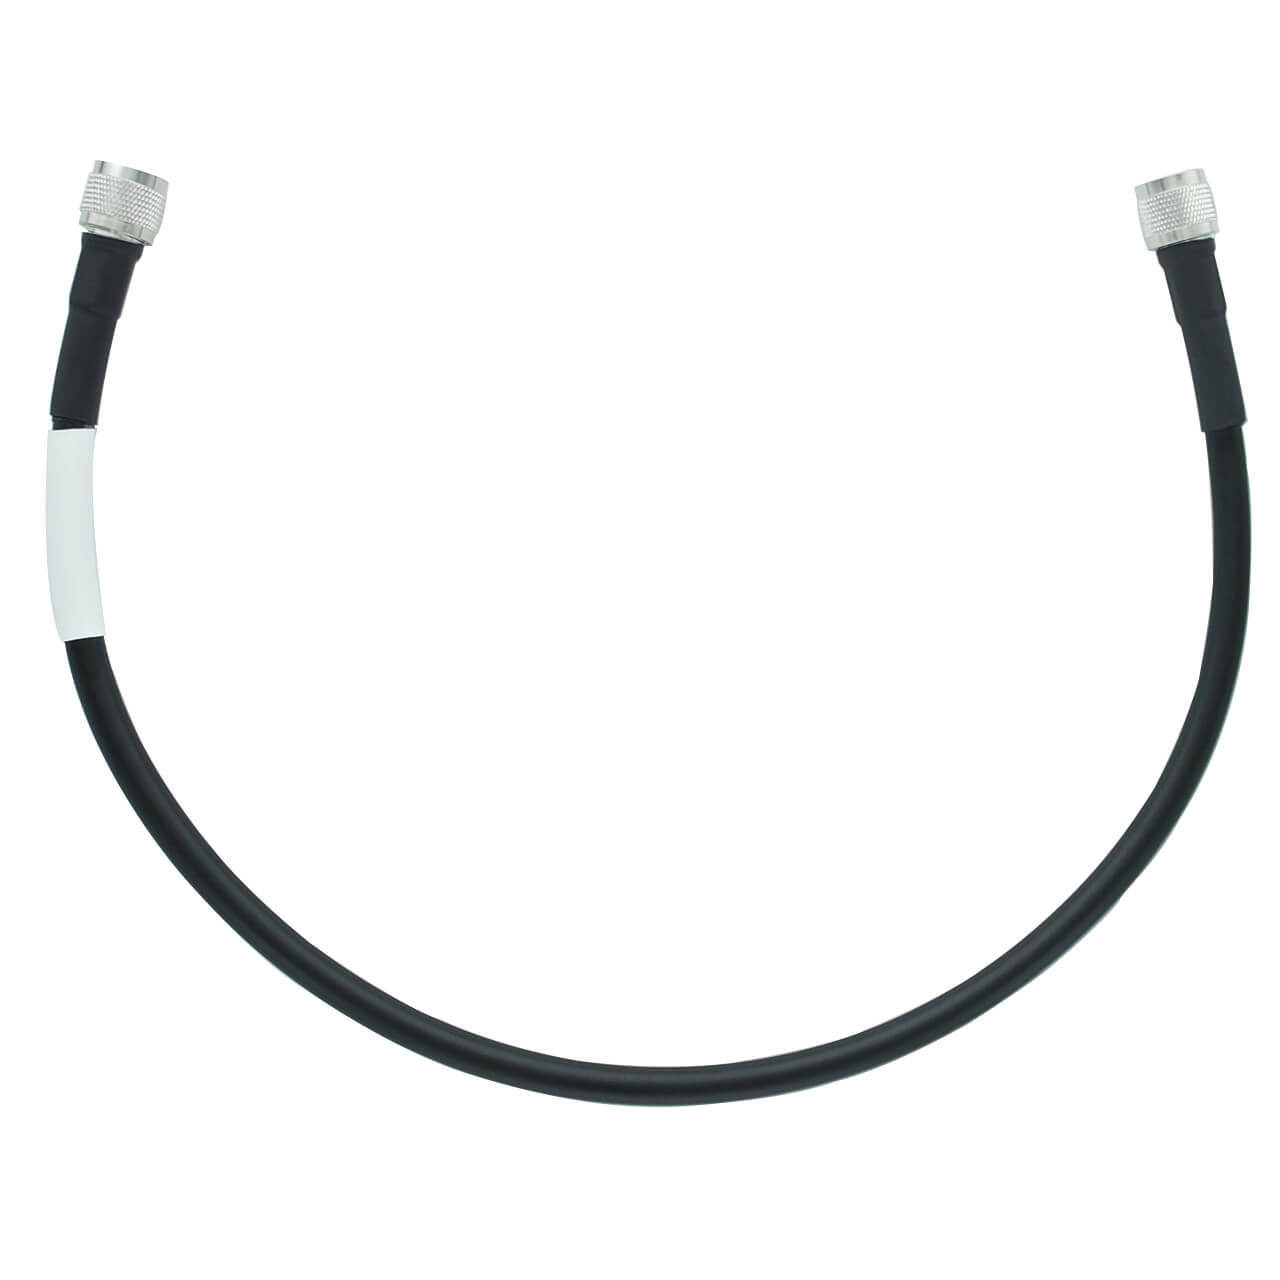 2 Ft Bolton400 (Equivalent to LMR400) Low-loss Cable